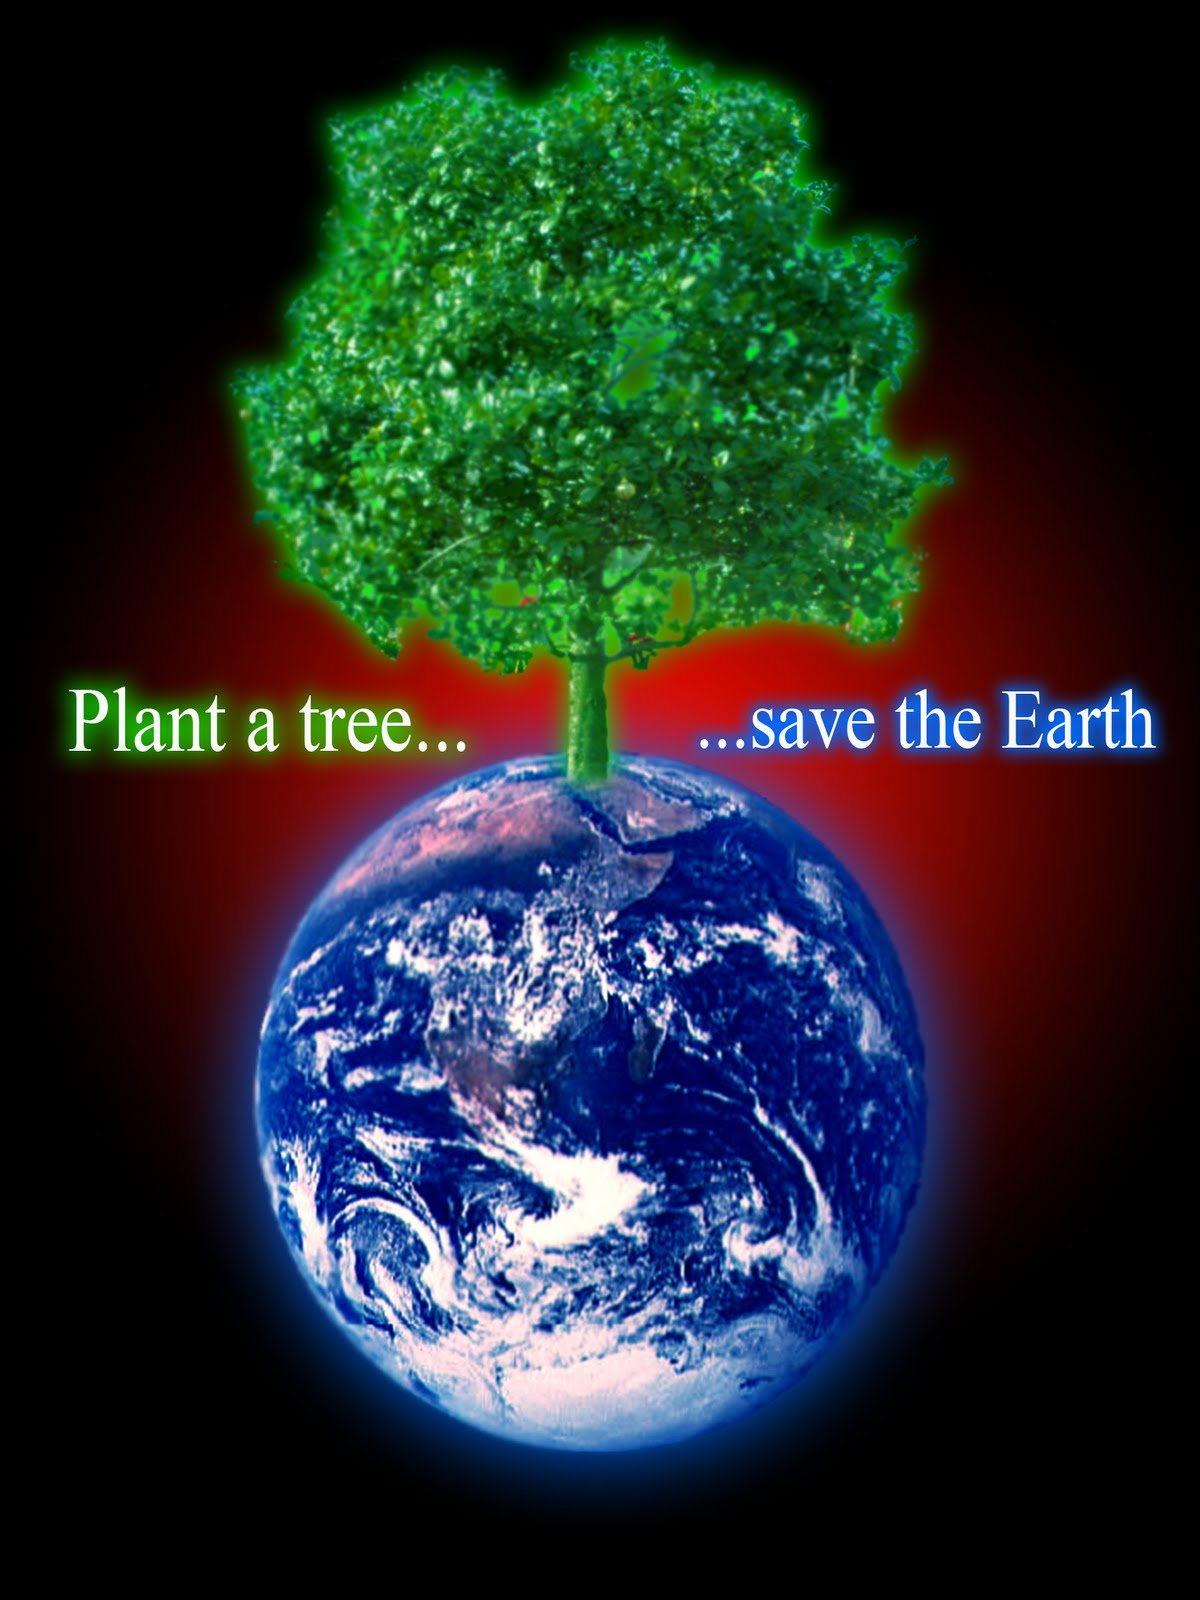 help save the earth